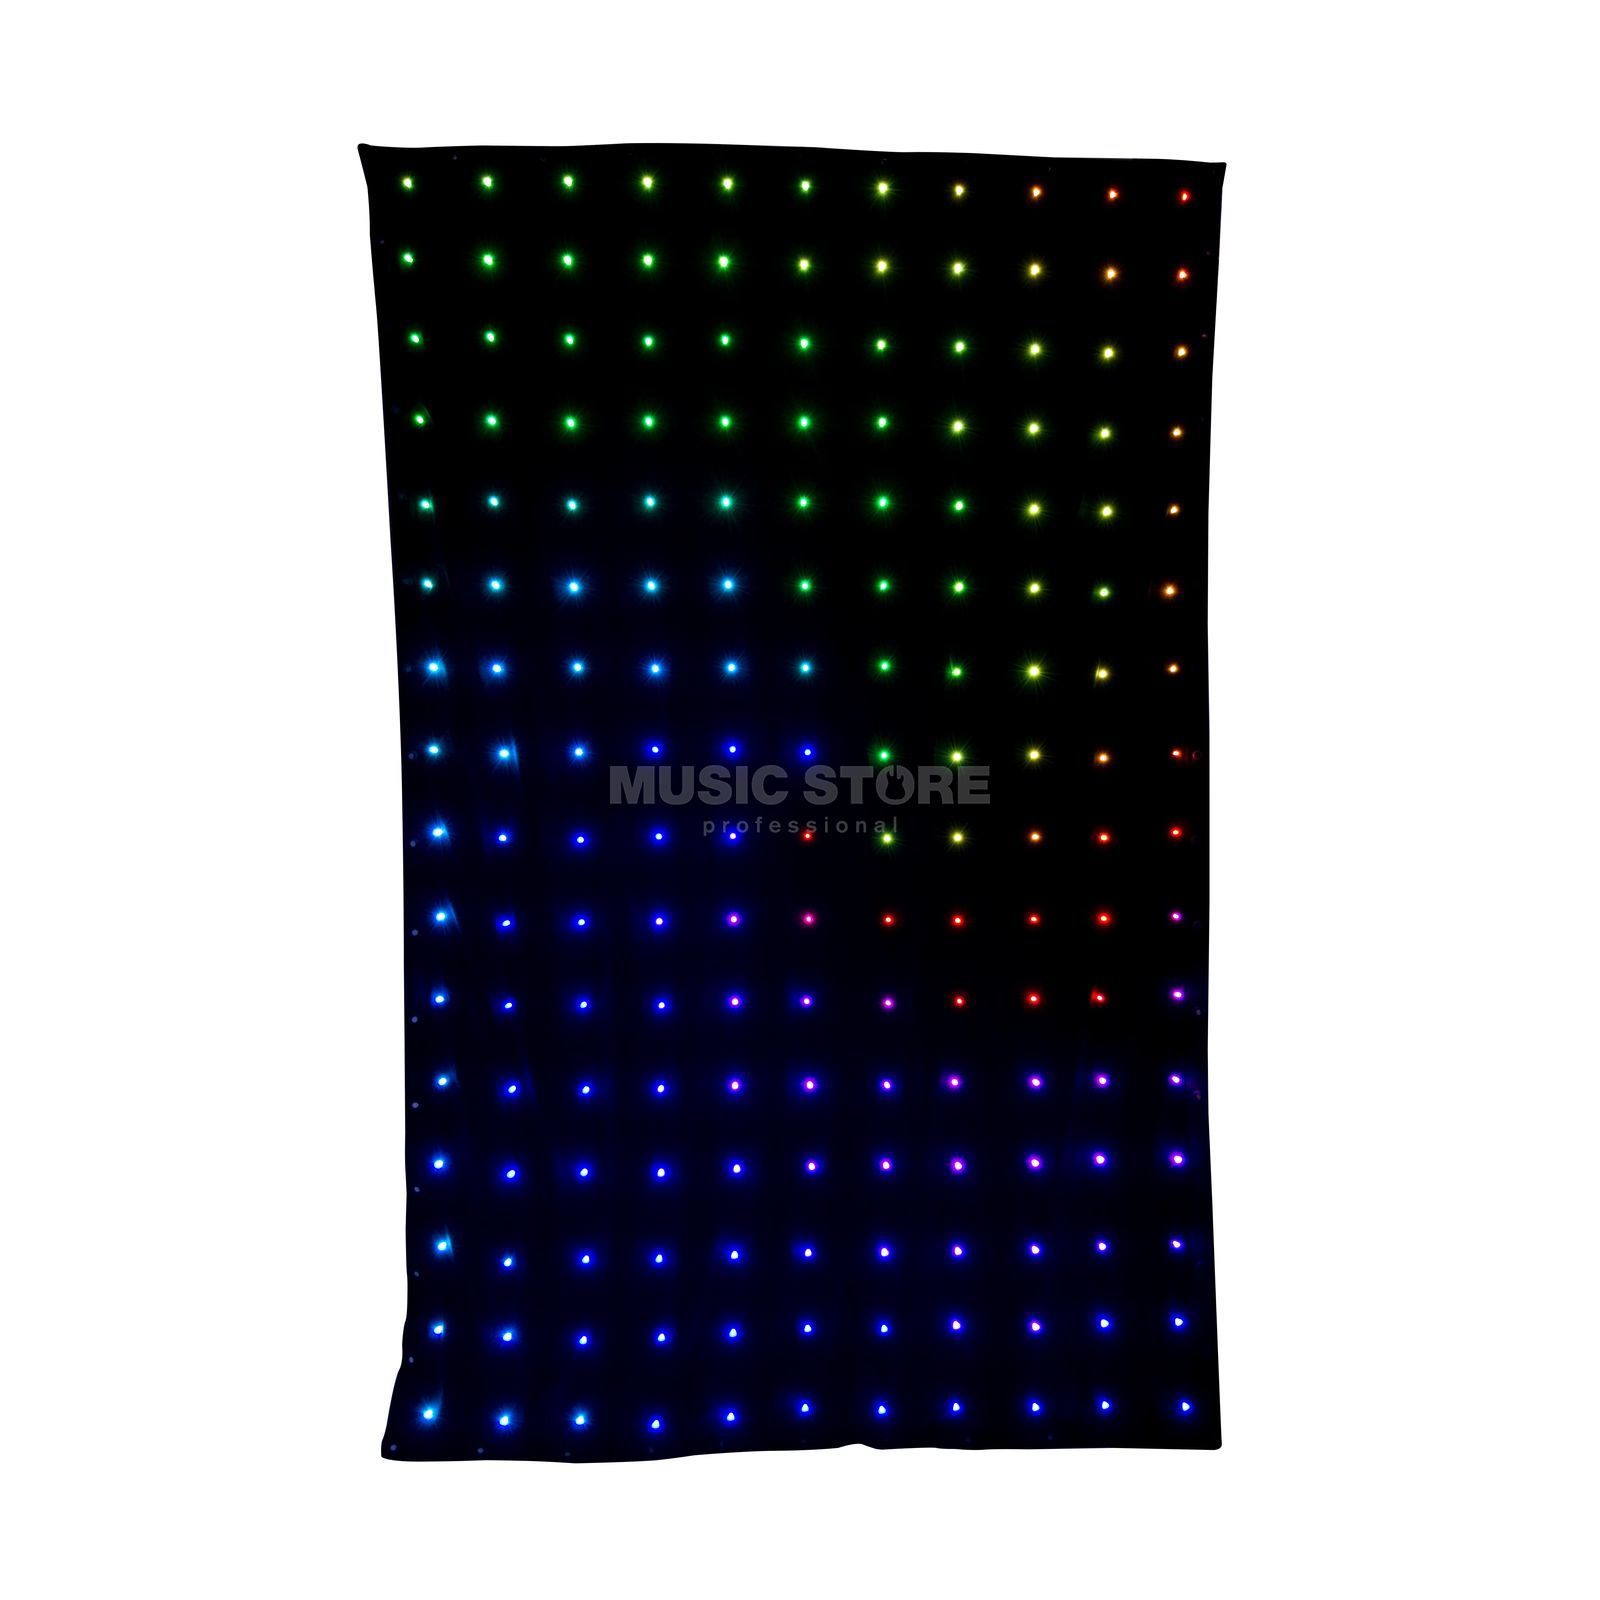 lightmaXX LED DROP II RGB 2x3m, incl. Controller & Bag Produktbillede